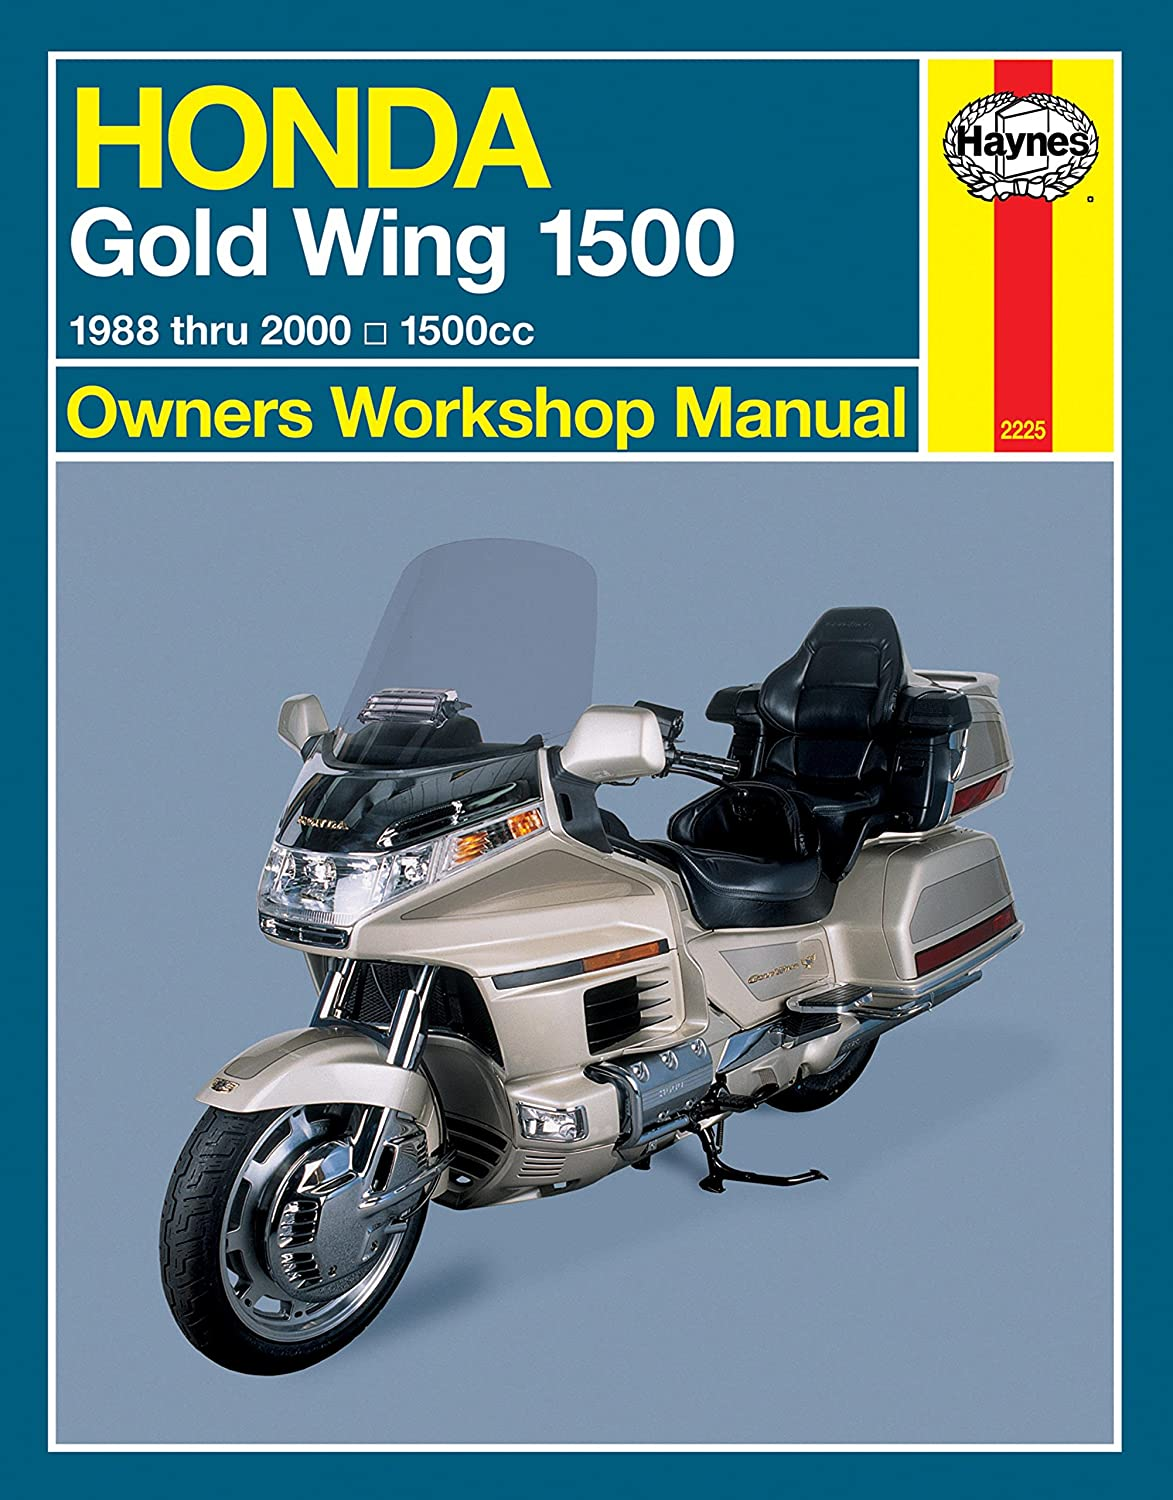 2006 Honda Goldwing Gl1800 Owners Manual Various Owner Guide 2003 Wiring Diagram Parts Schematic Auto Electrical U2022 Rh 6weeks Co Uk 2005 Vtx1300r Service